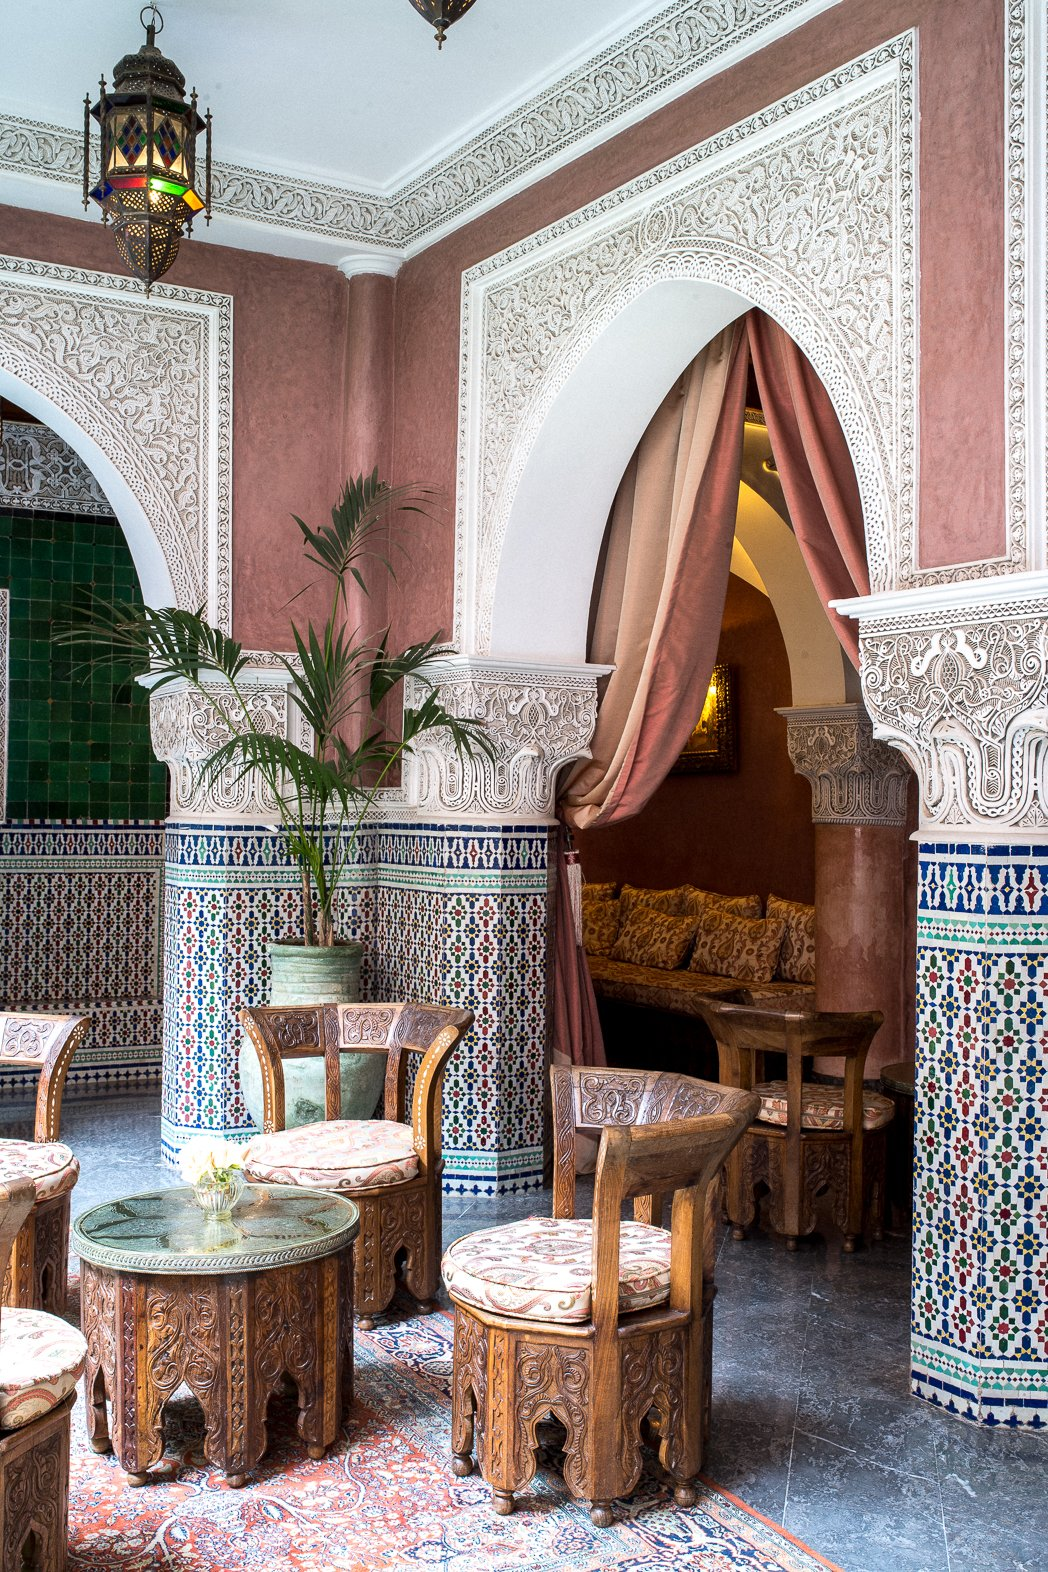 STACIE FLINNER La Sultana Marrakech City Guide-61.jpg